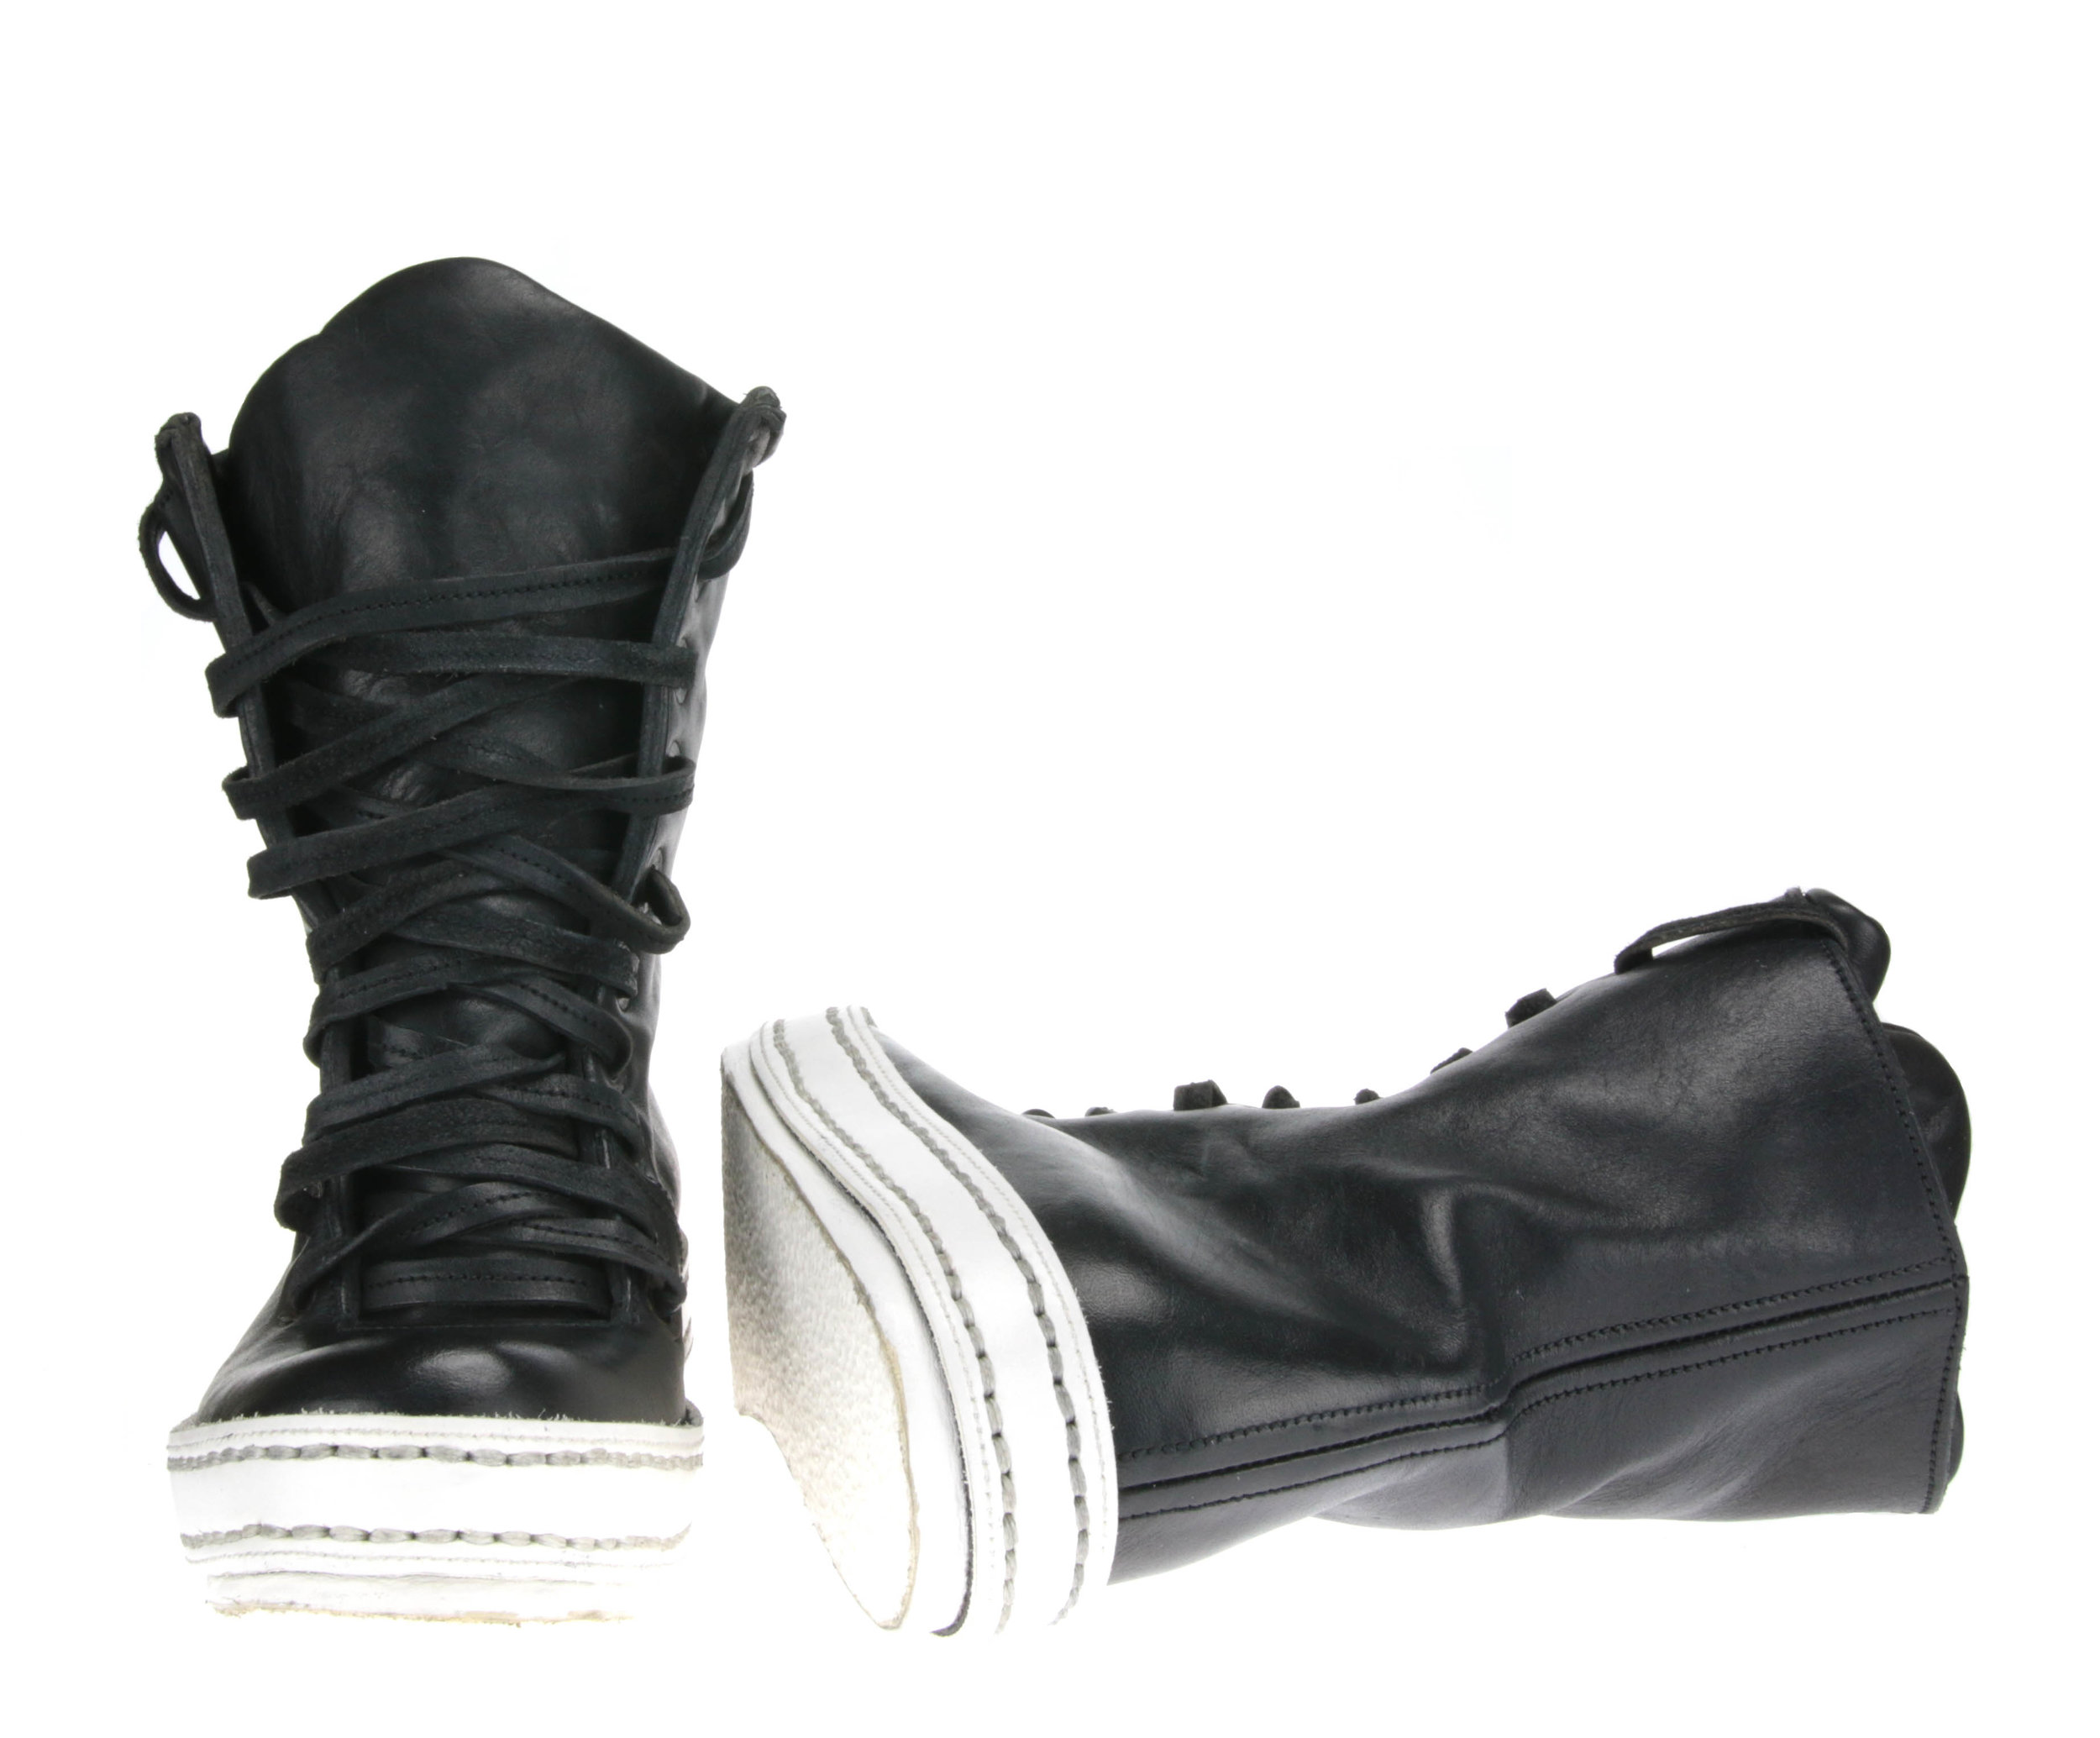 10Holes Black and White front sole.jpg